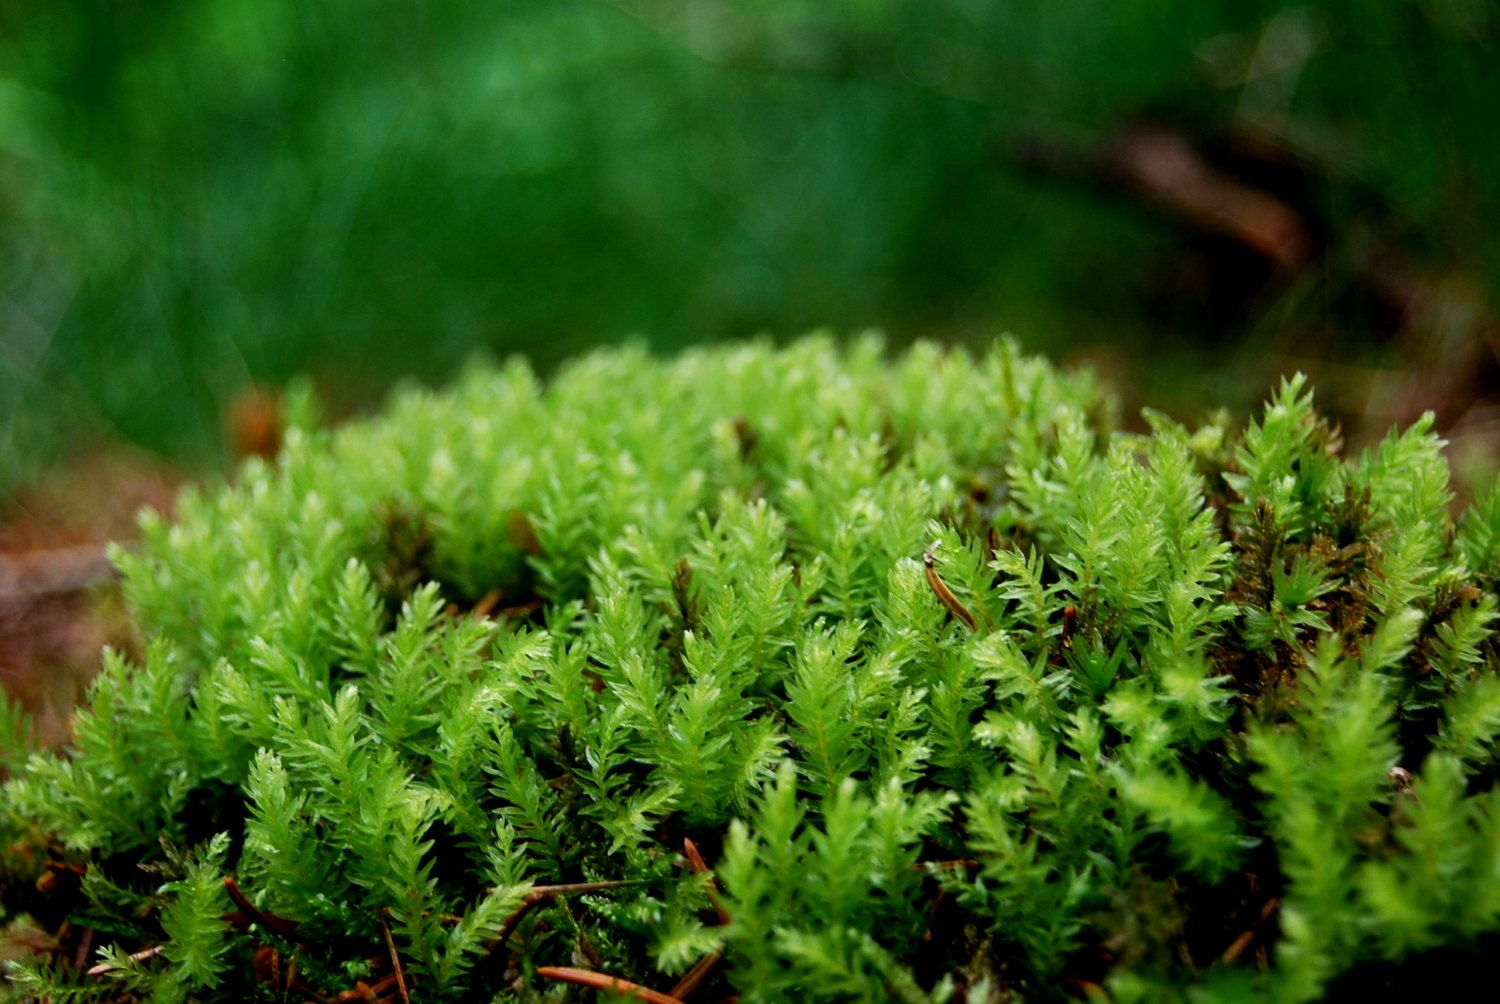 Awesome Live Moss, Lowland Moss, For Terrarium, Vivarium, Frogs, Miniature Garden Or